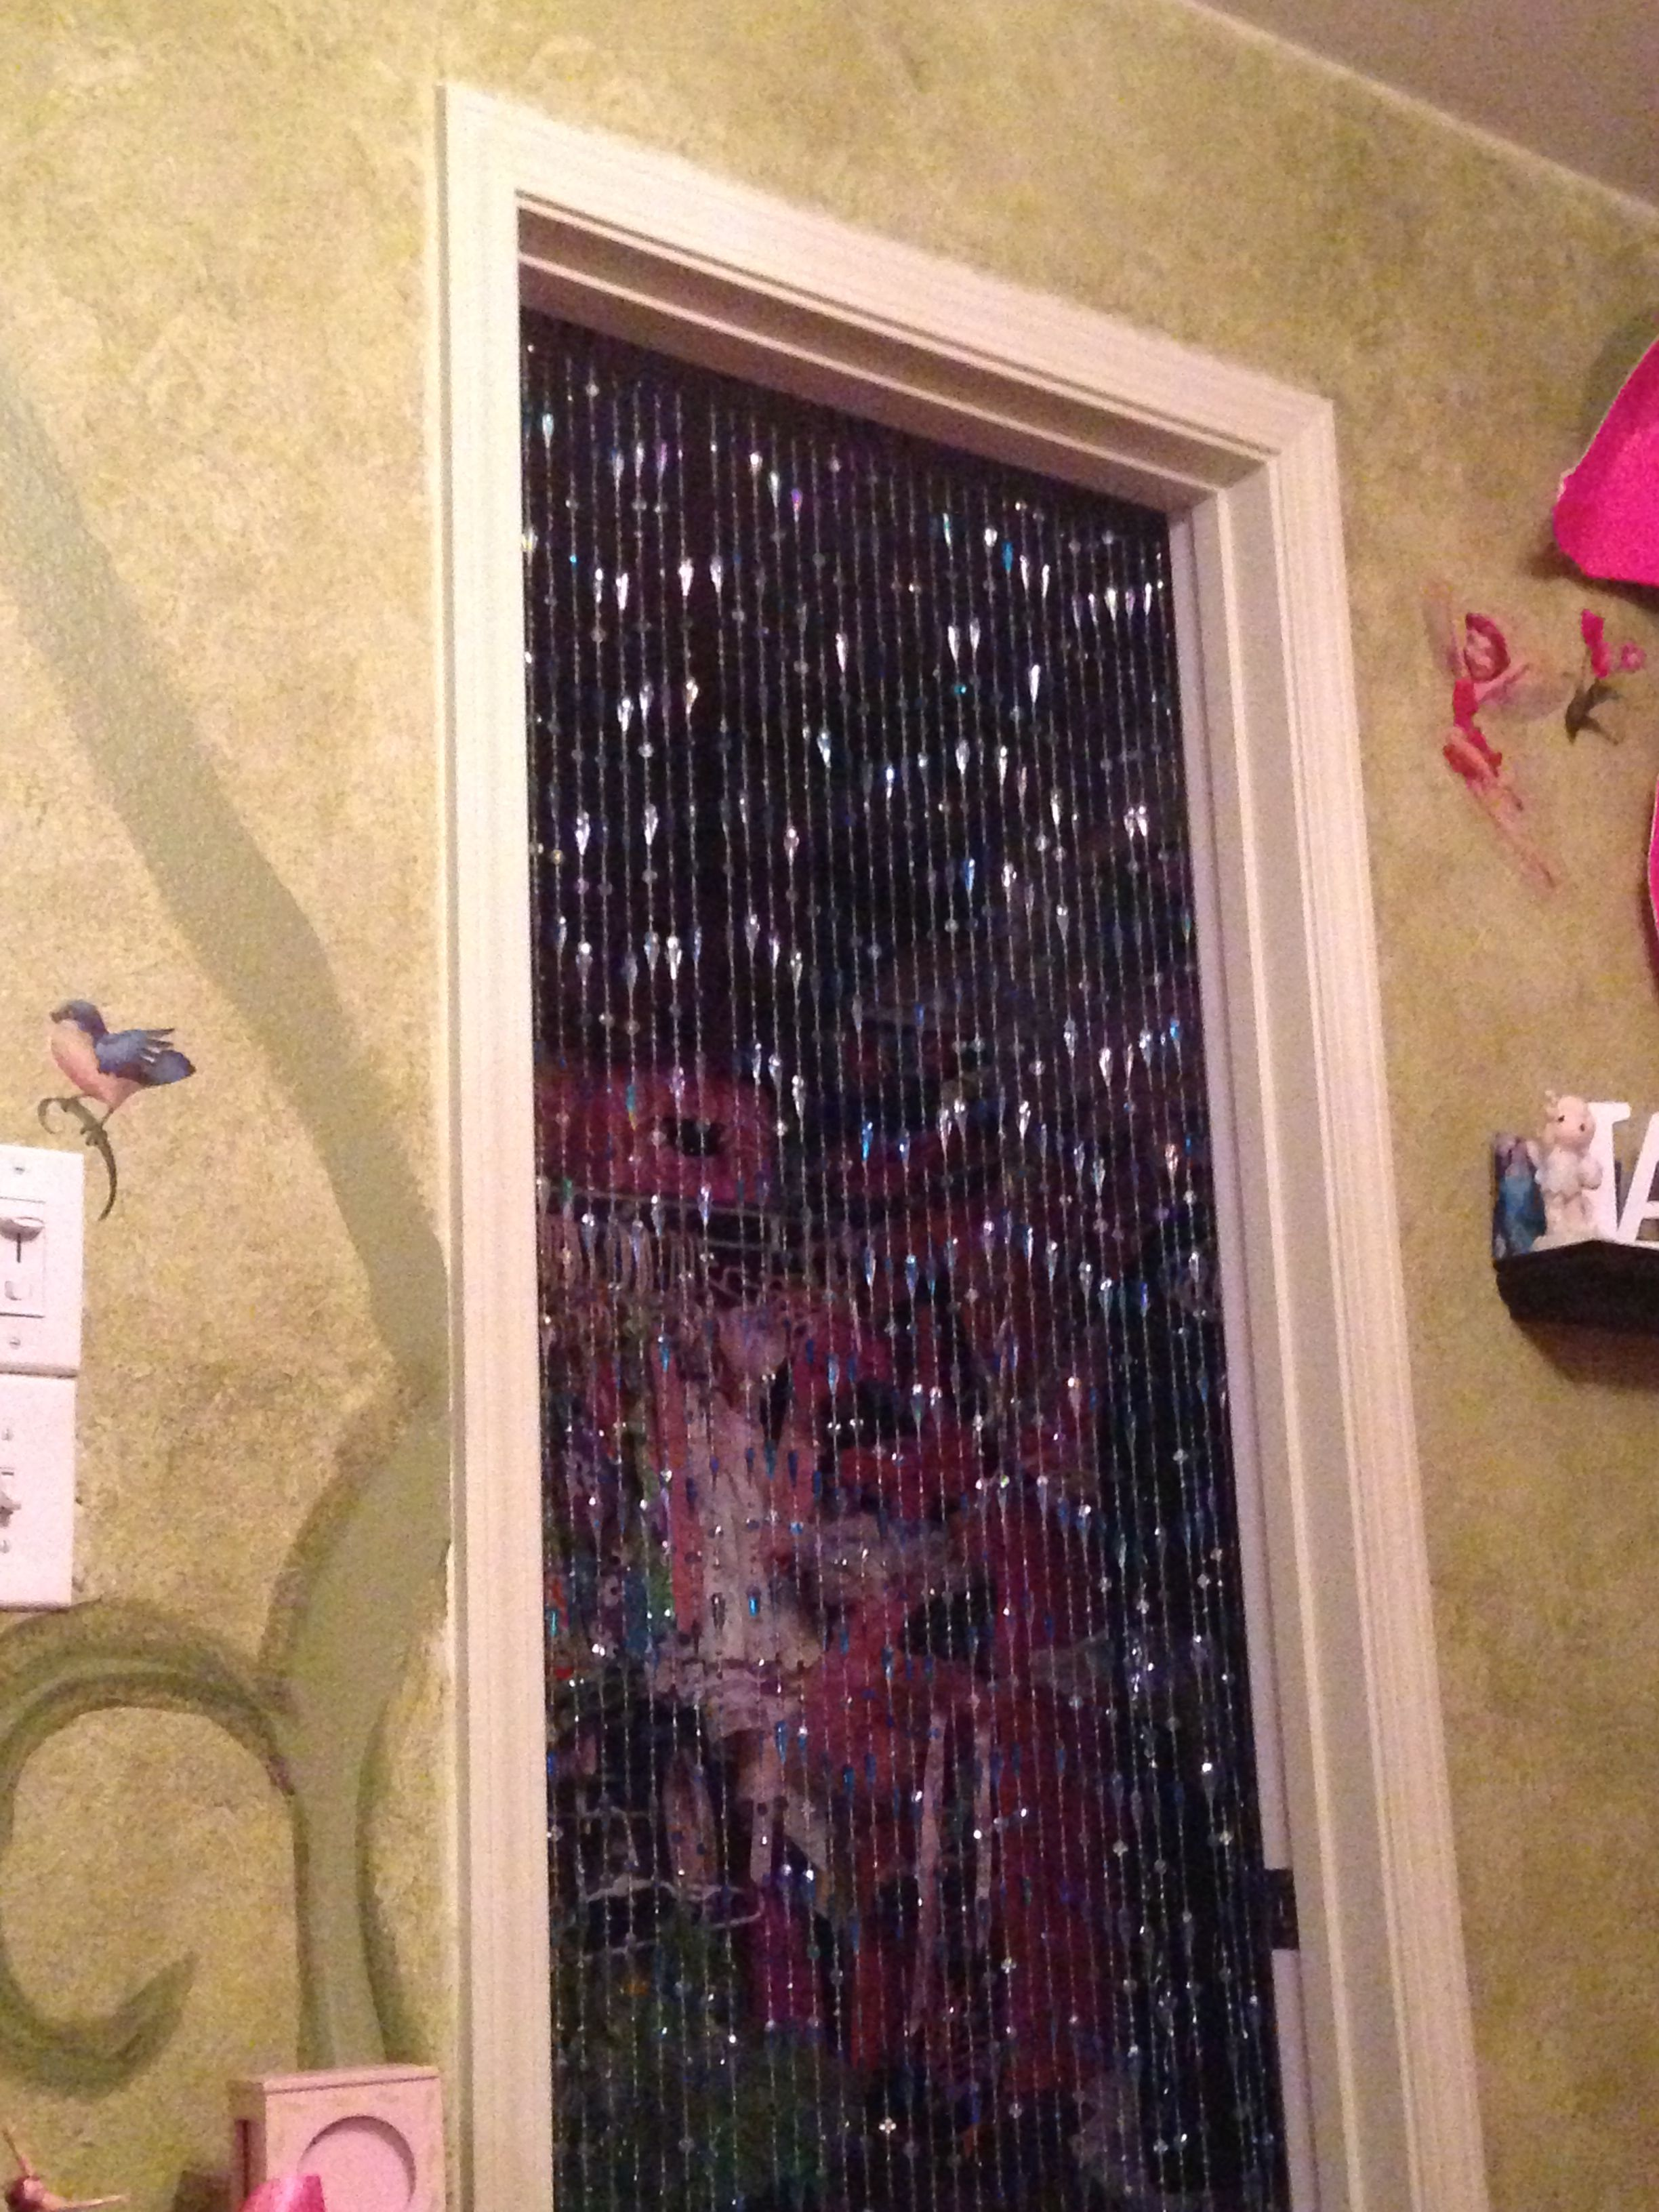 Bead Curtain As Closet Door For Little Girls Room Curtains For